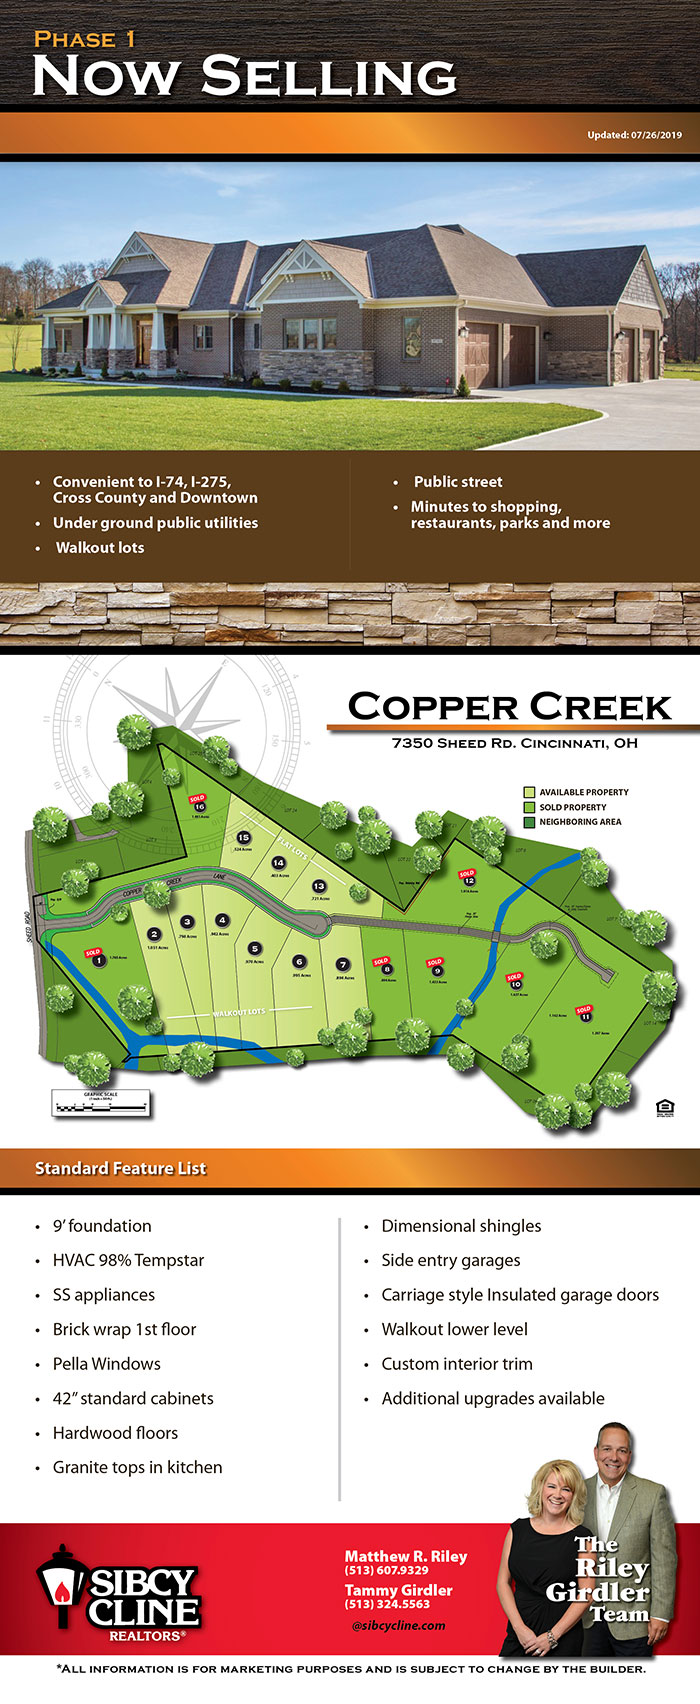 Copper Creek Location Rendering